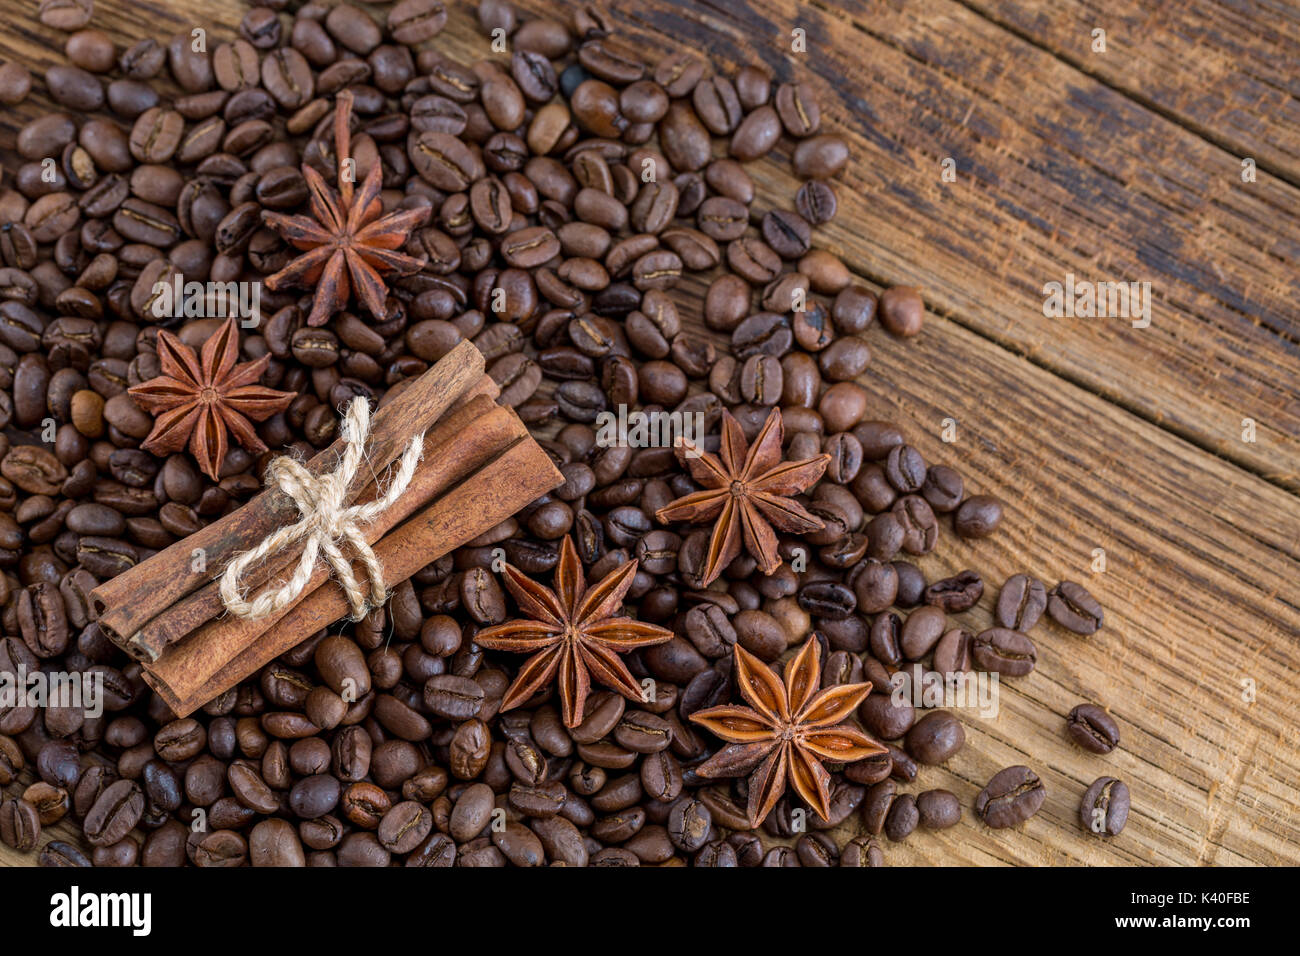 Background texture of grains of coffee cinnamon and anise stars - Stock Image